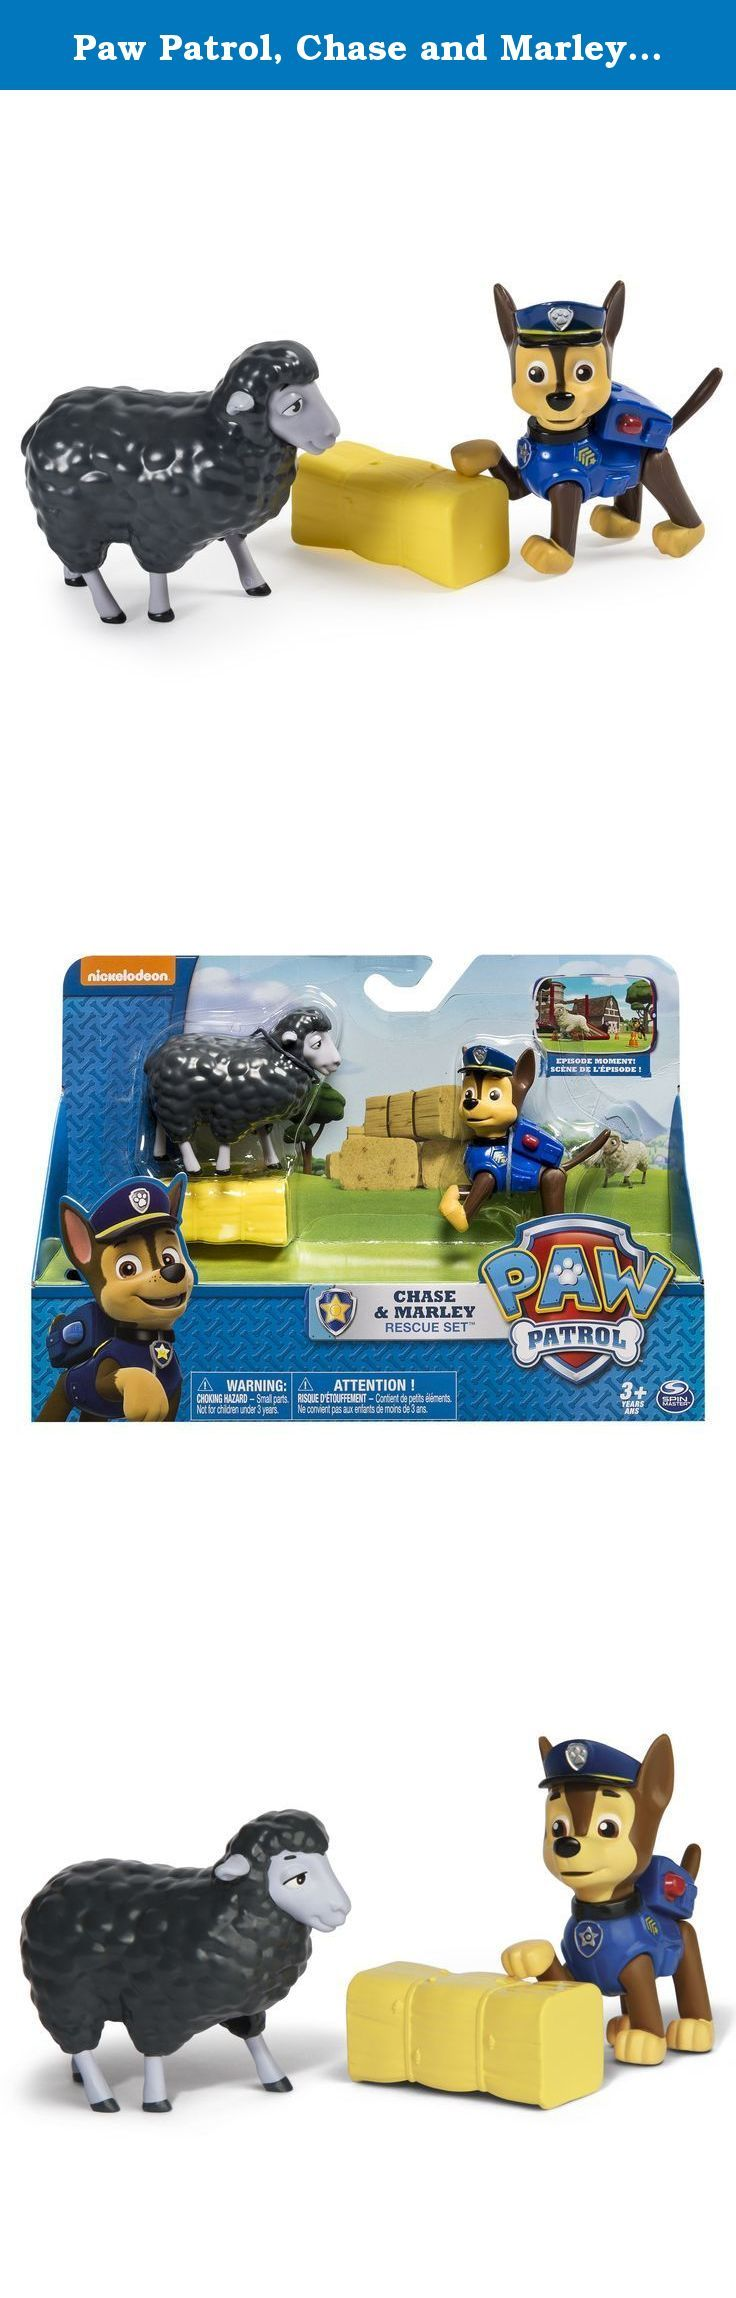 Paw Patrol, Chase and Marley Rescue Set. Chase is on the case! Marley the sheep needs help to win the competition. Chase is ready to use his real moving legs to herd the sheep and teach them how to jump over the bale of hay. Discover even more Adventure Bay rescue action with Marshall, Skye, Rubble and Rocky Rescue Sets. Bring home the Chase and Sheep Rescue Set and let your kids re-create all of their favorite rescues from the Paw Patrol TV show! No job is too big, no pup is too small!.